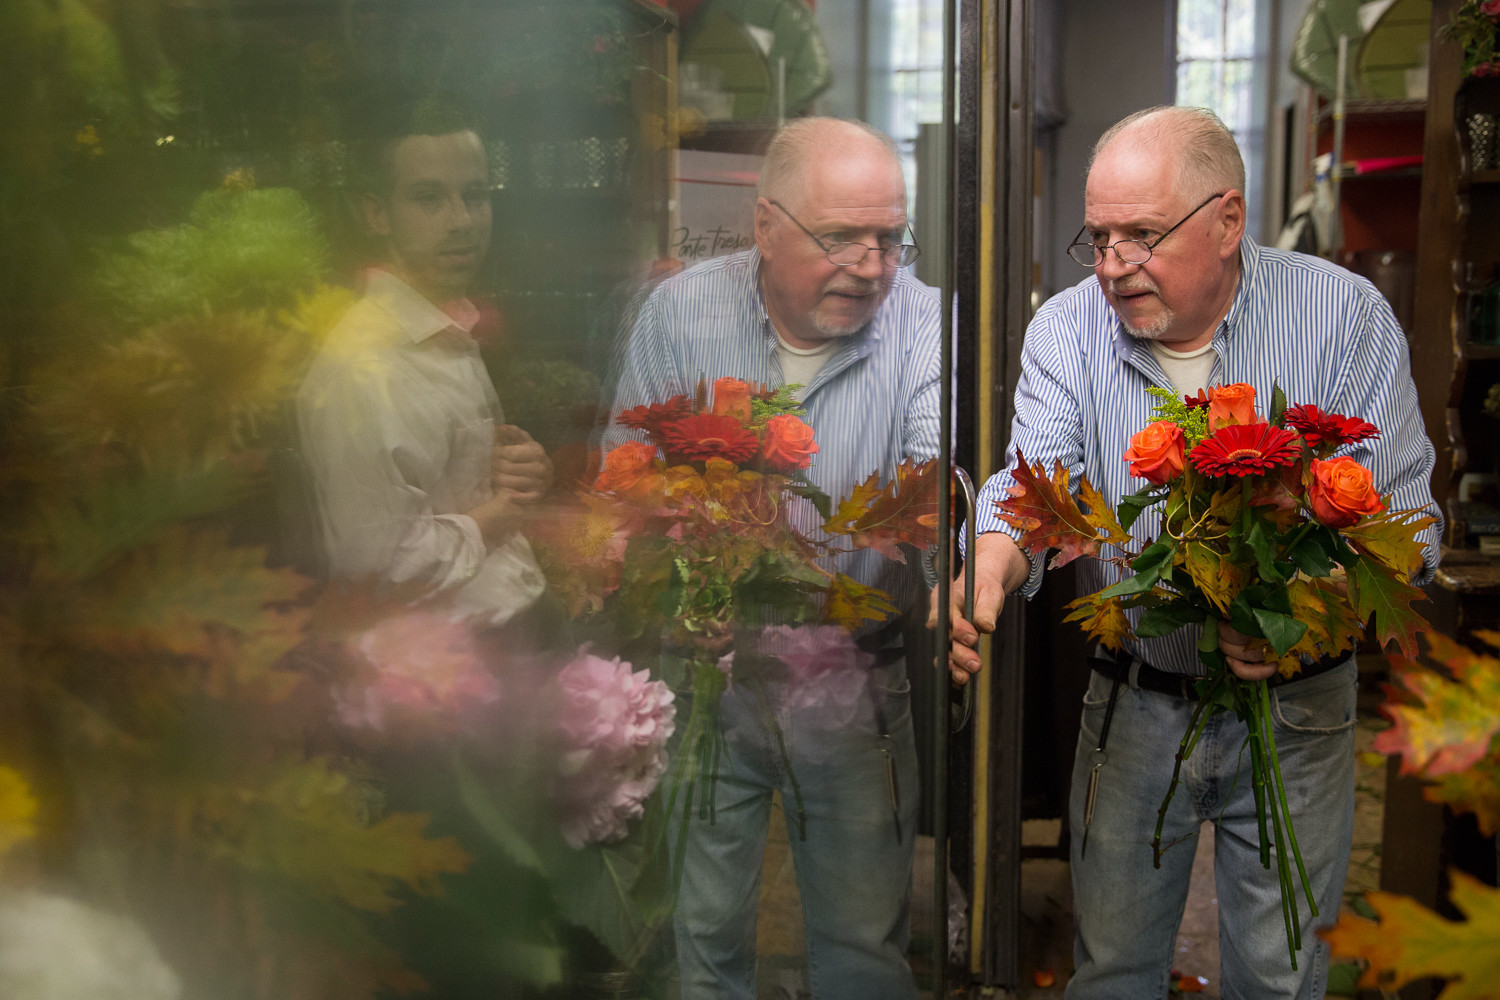 John McKeon, owner of John's Botany Bay Florist, prepares a bouquet while a customer assesses the assortment. The shop was humming on a recent afternoon as McKeon hustled to keep up with a flood of end-of-day orders.